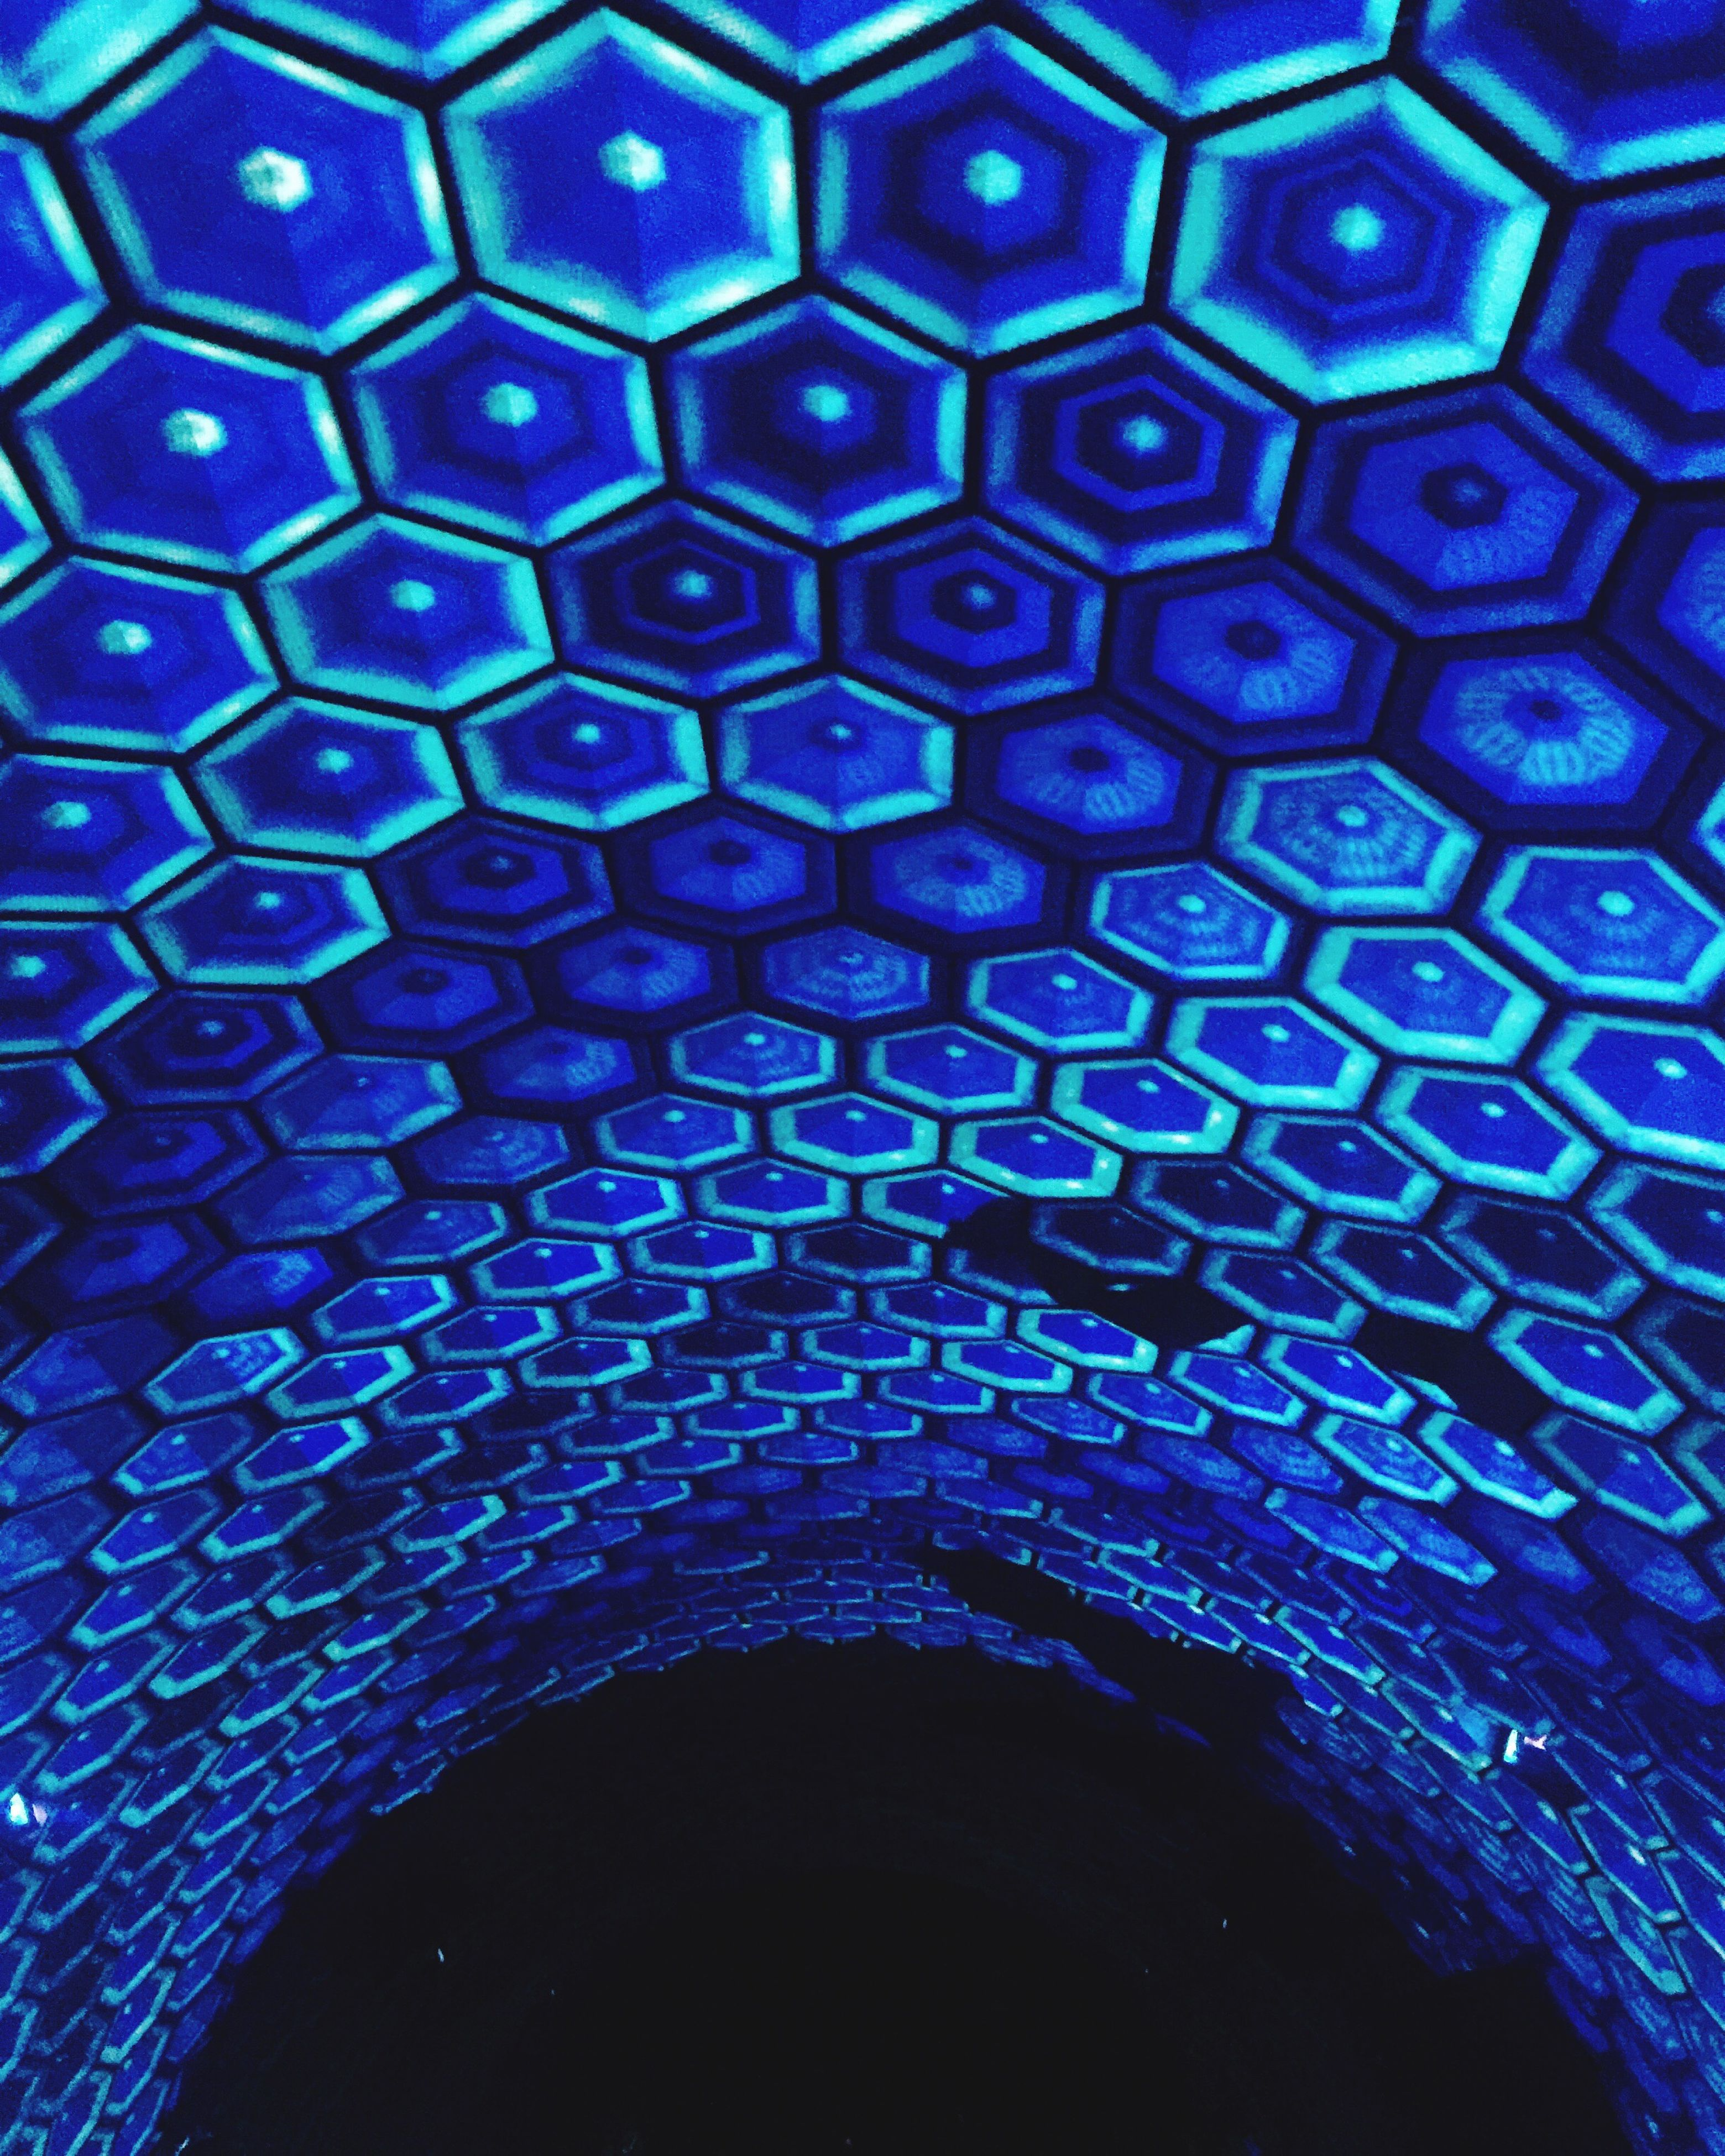 indoors, pattern, full frame, backgrounds, blue, circle, design, ceiling, built structure, architecture, textured, abstract, geometric shape, low angle view, shape, illuminated, no people, close-up, repetition, architectural feature